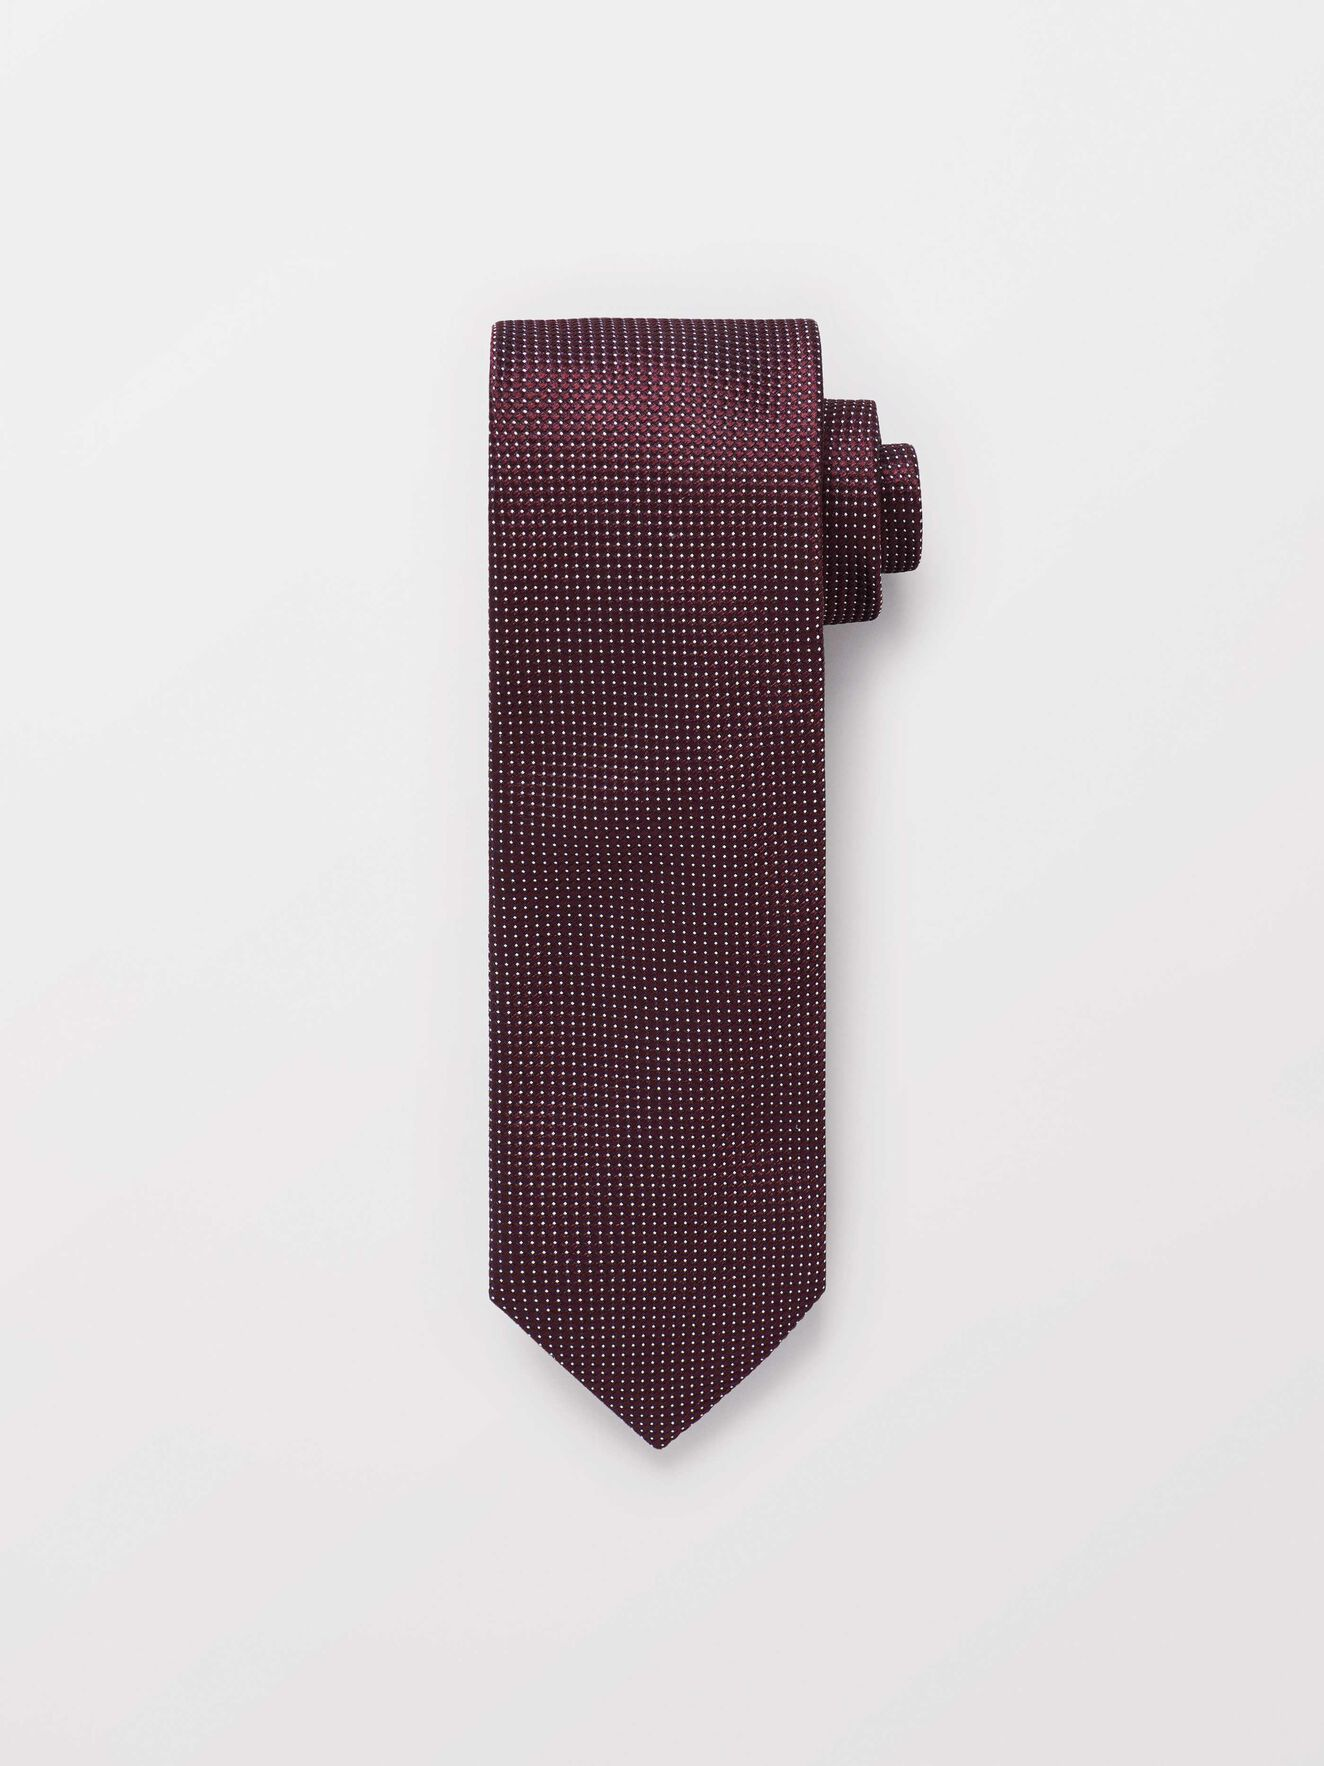 Tottis Tie in Noon Plum from Tiger of Sweden